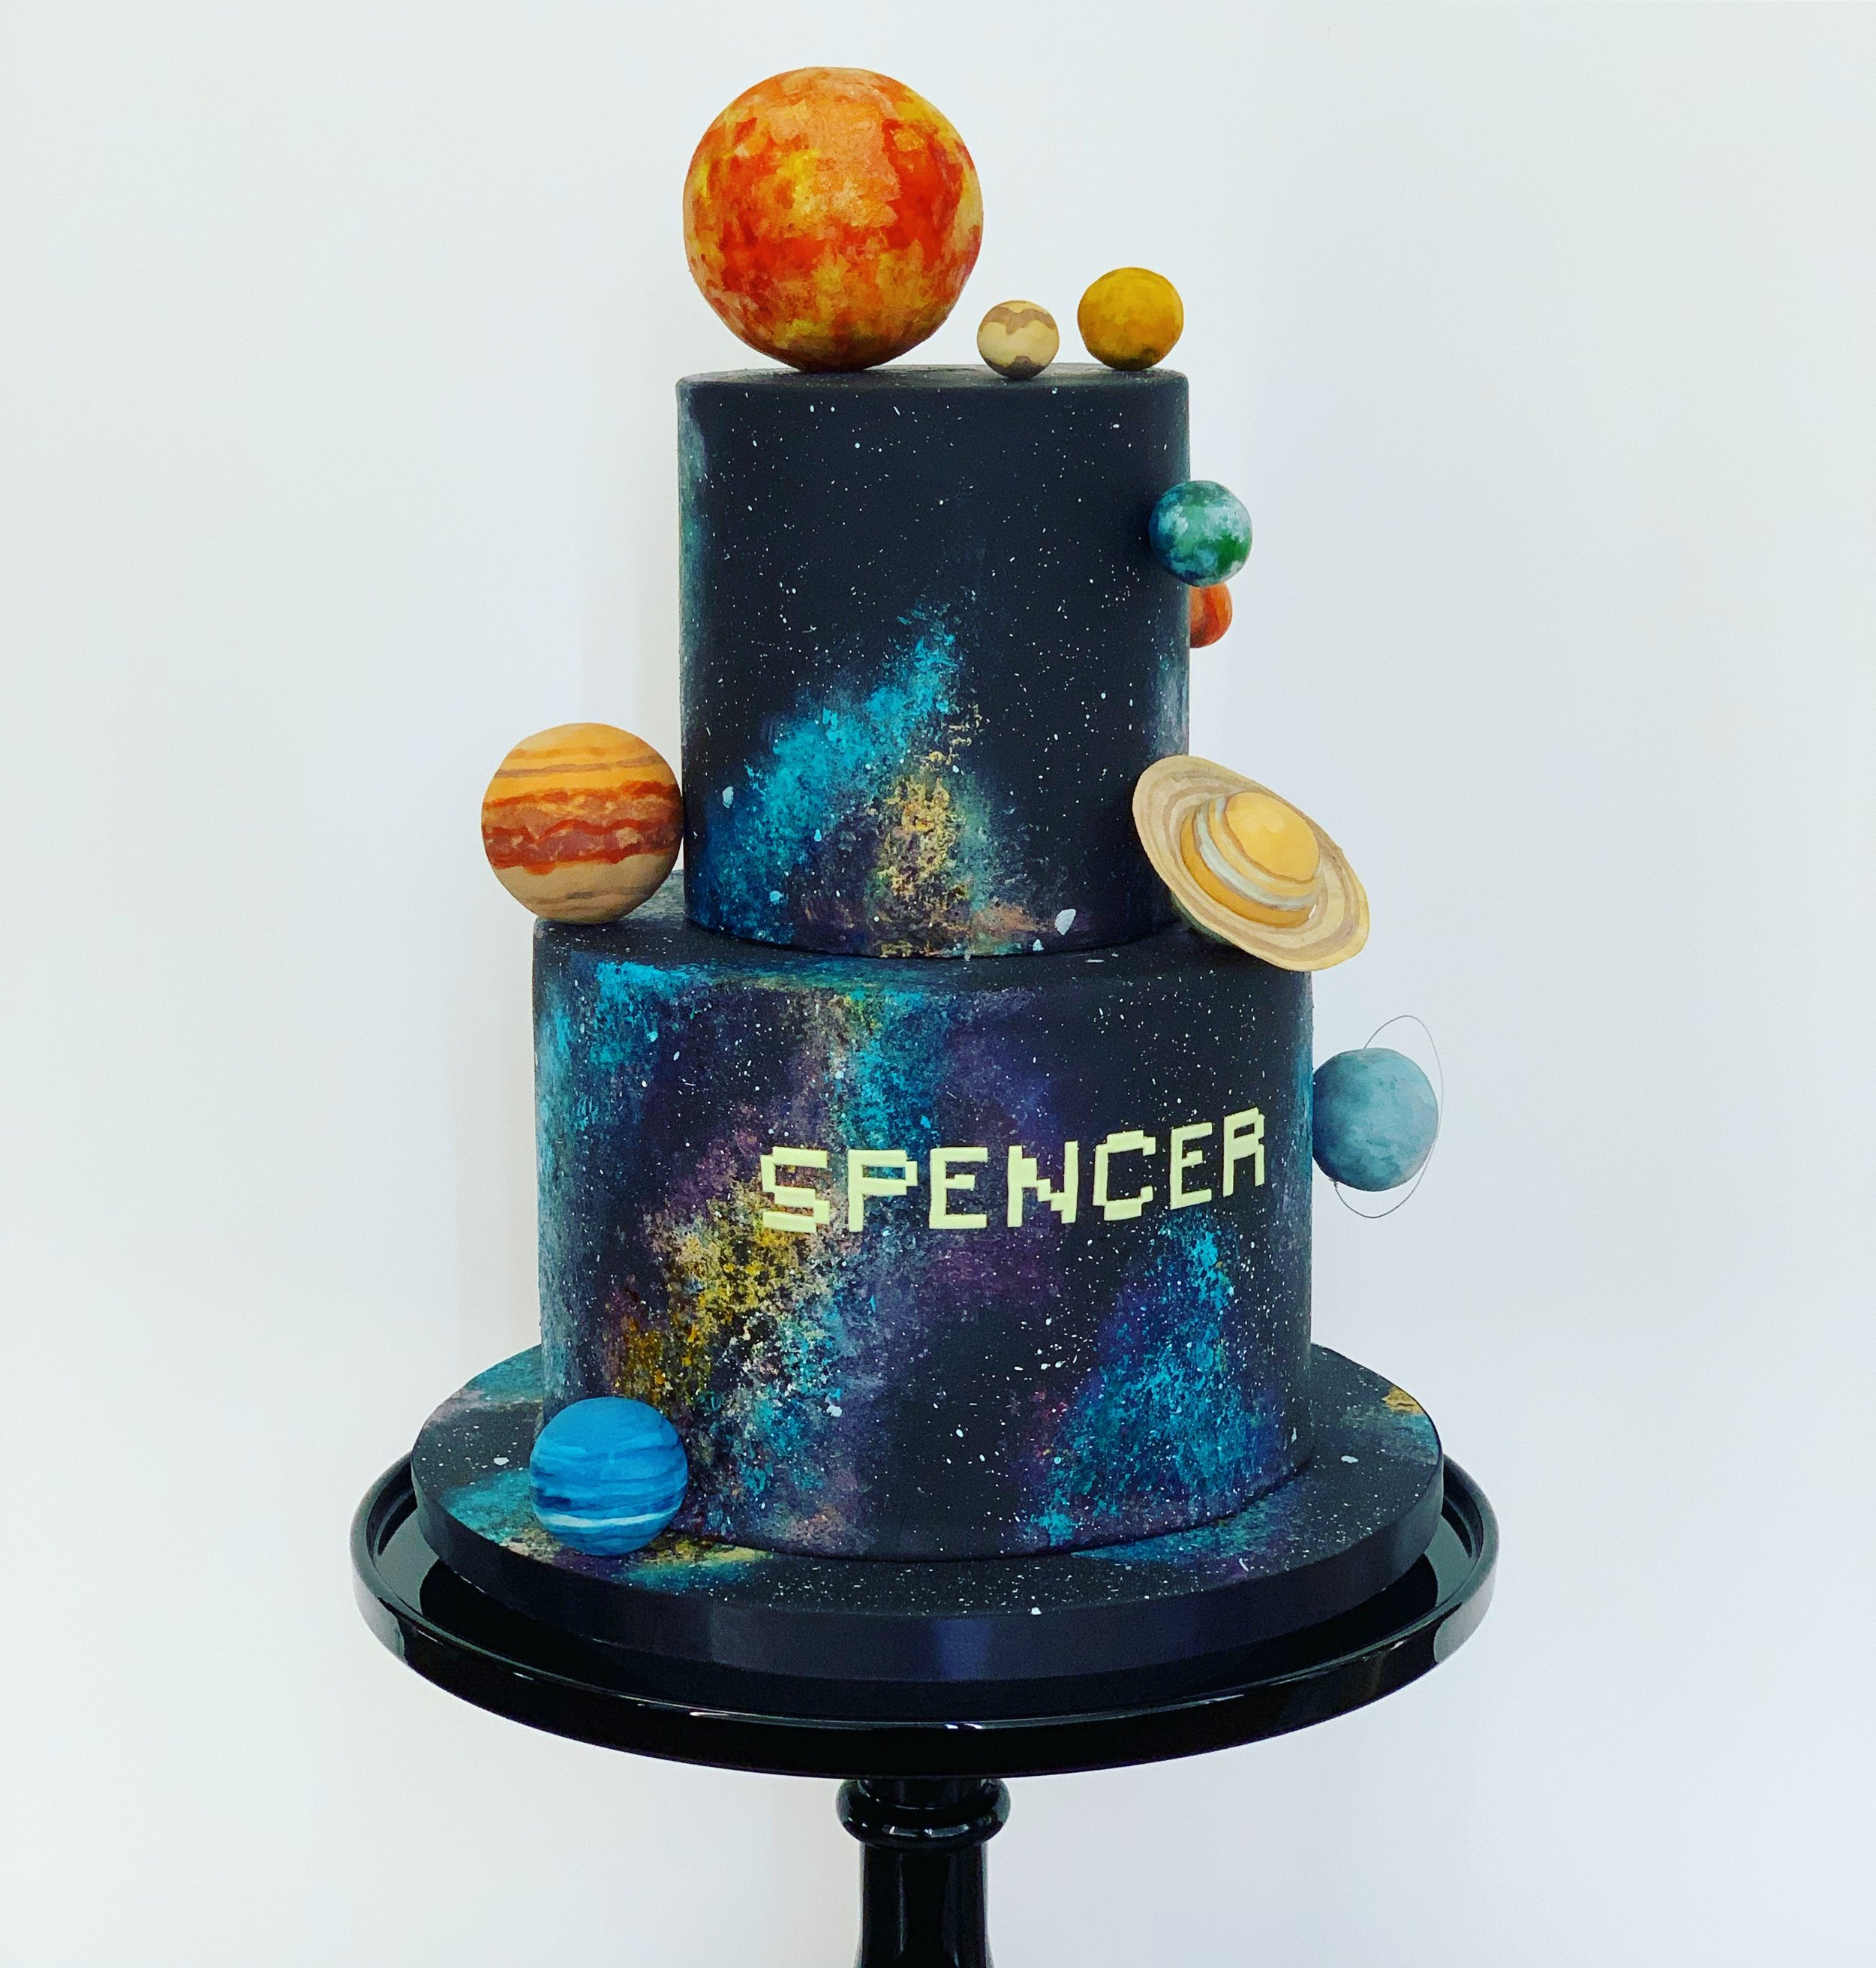 Solar System Cake With Hand Painted Veil Nebulae Image Copyright Carla Schier